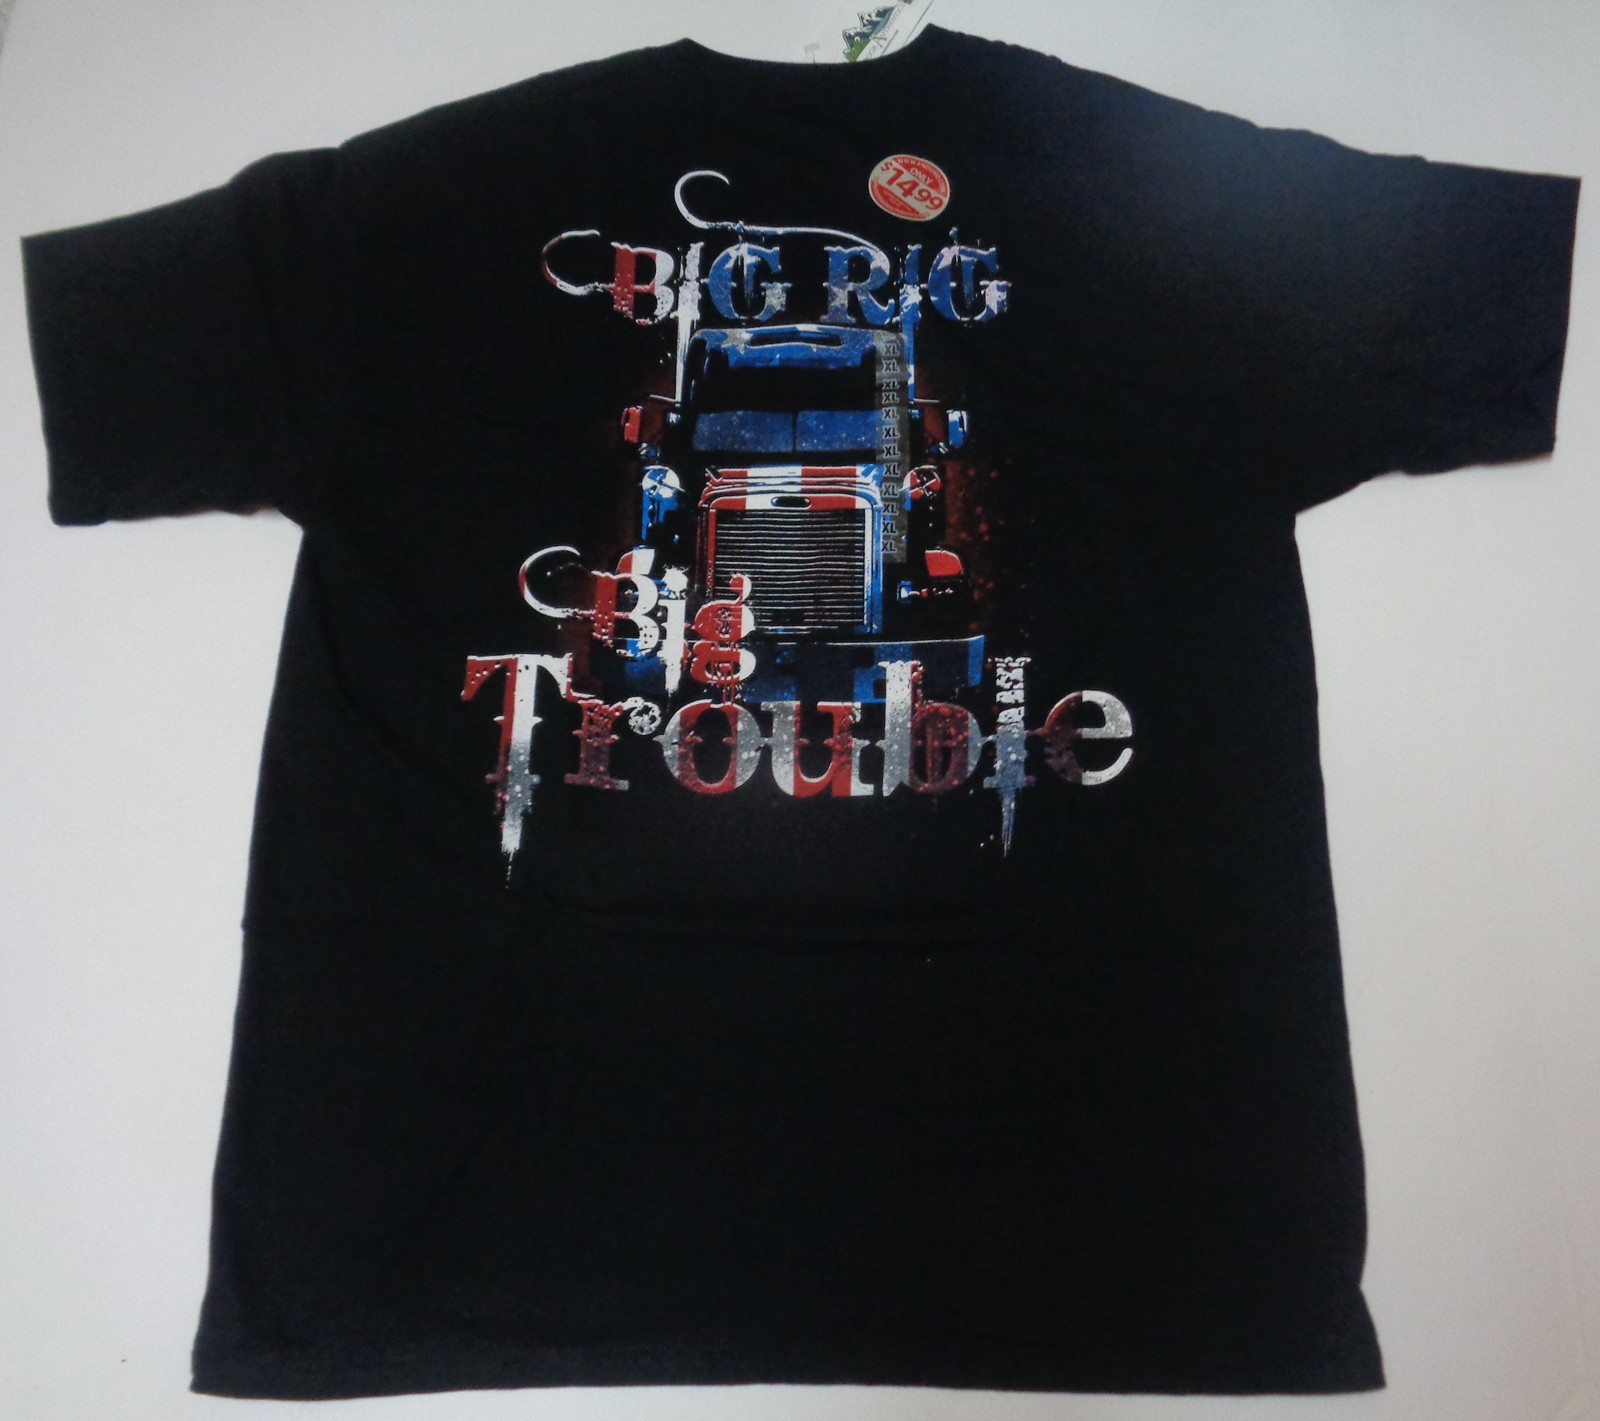 BIG RIG BIG TROUBLE TRUCKING T-shirt NWT Sz L, XL, 2XL